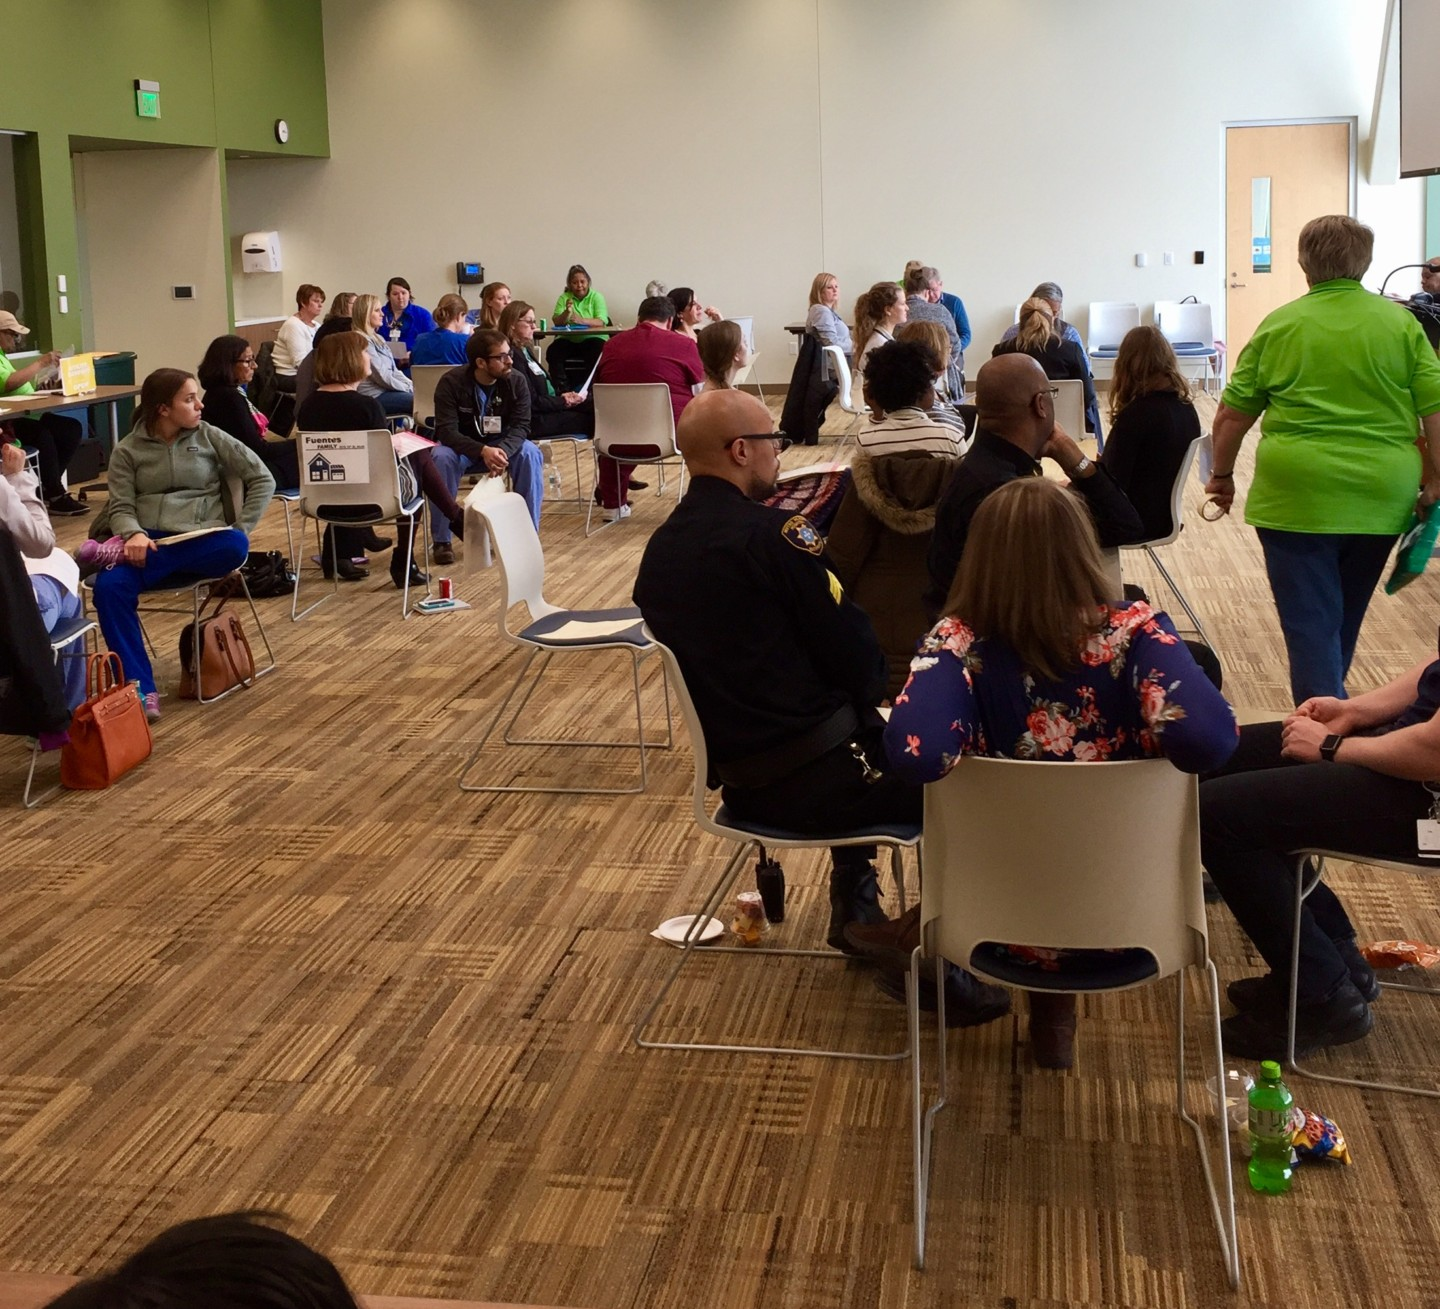 """Poverty Simulation Asks: """"What could we do differently?"""", By Ellie Walburg"""